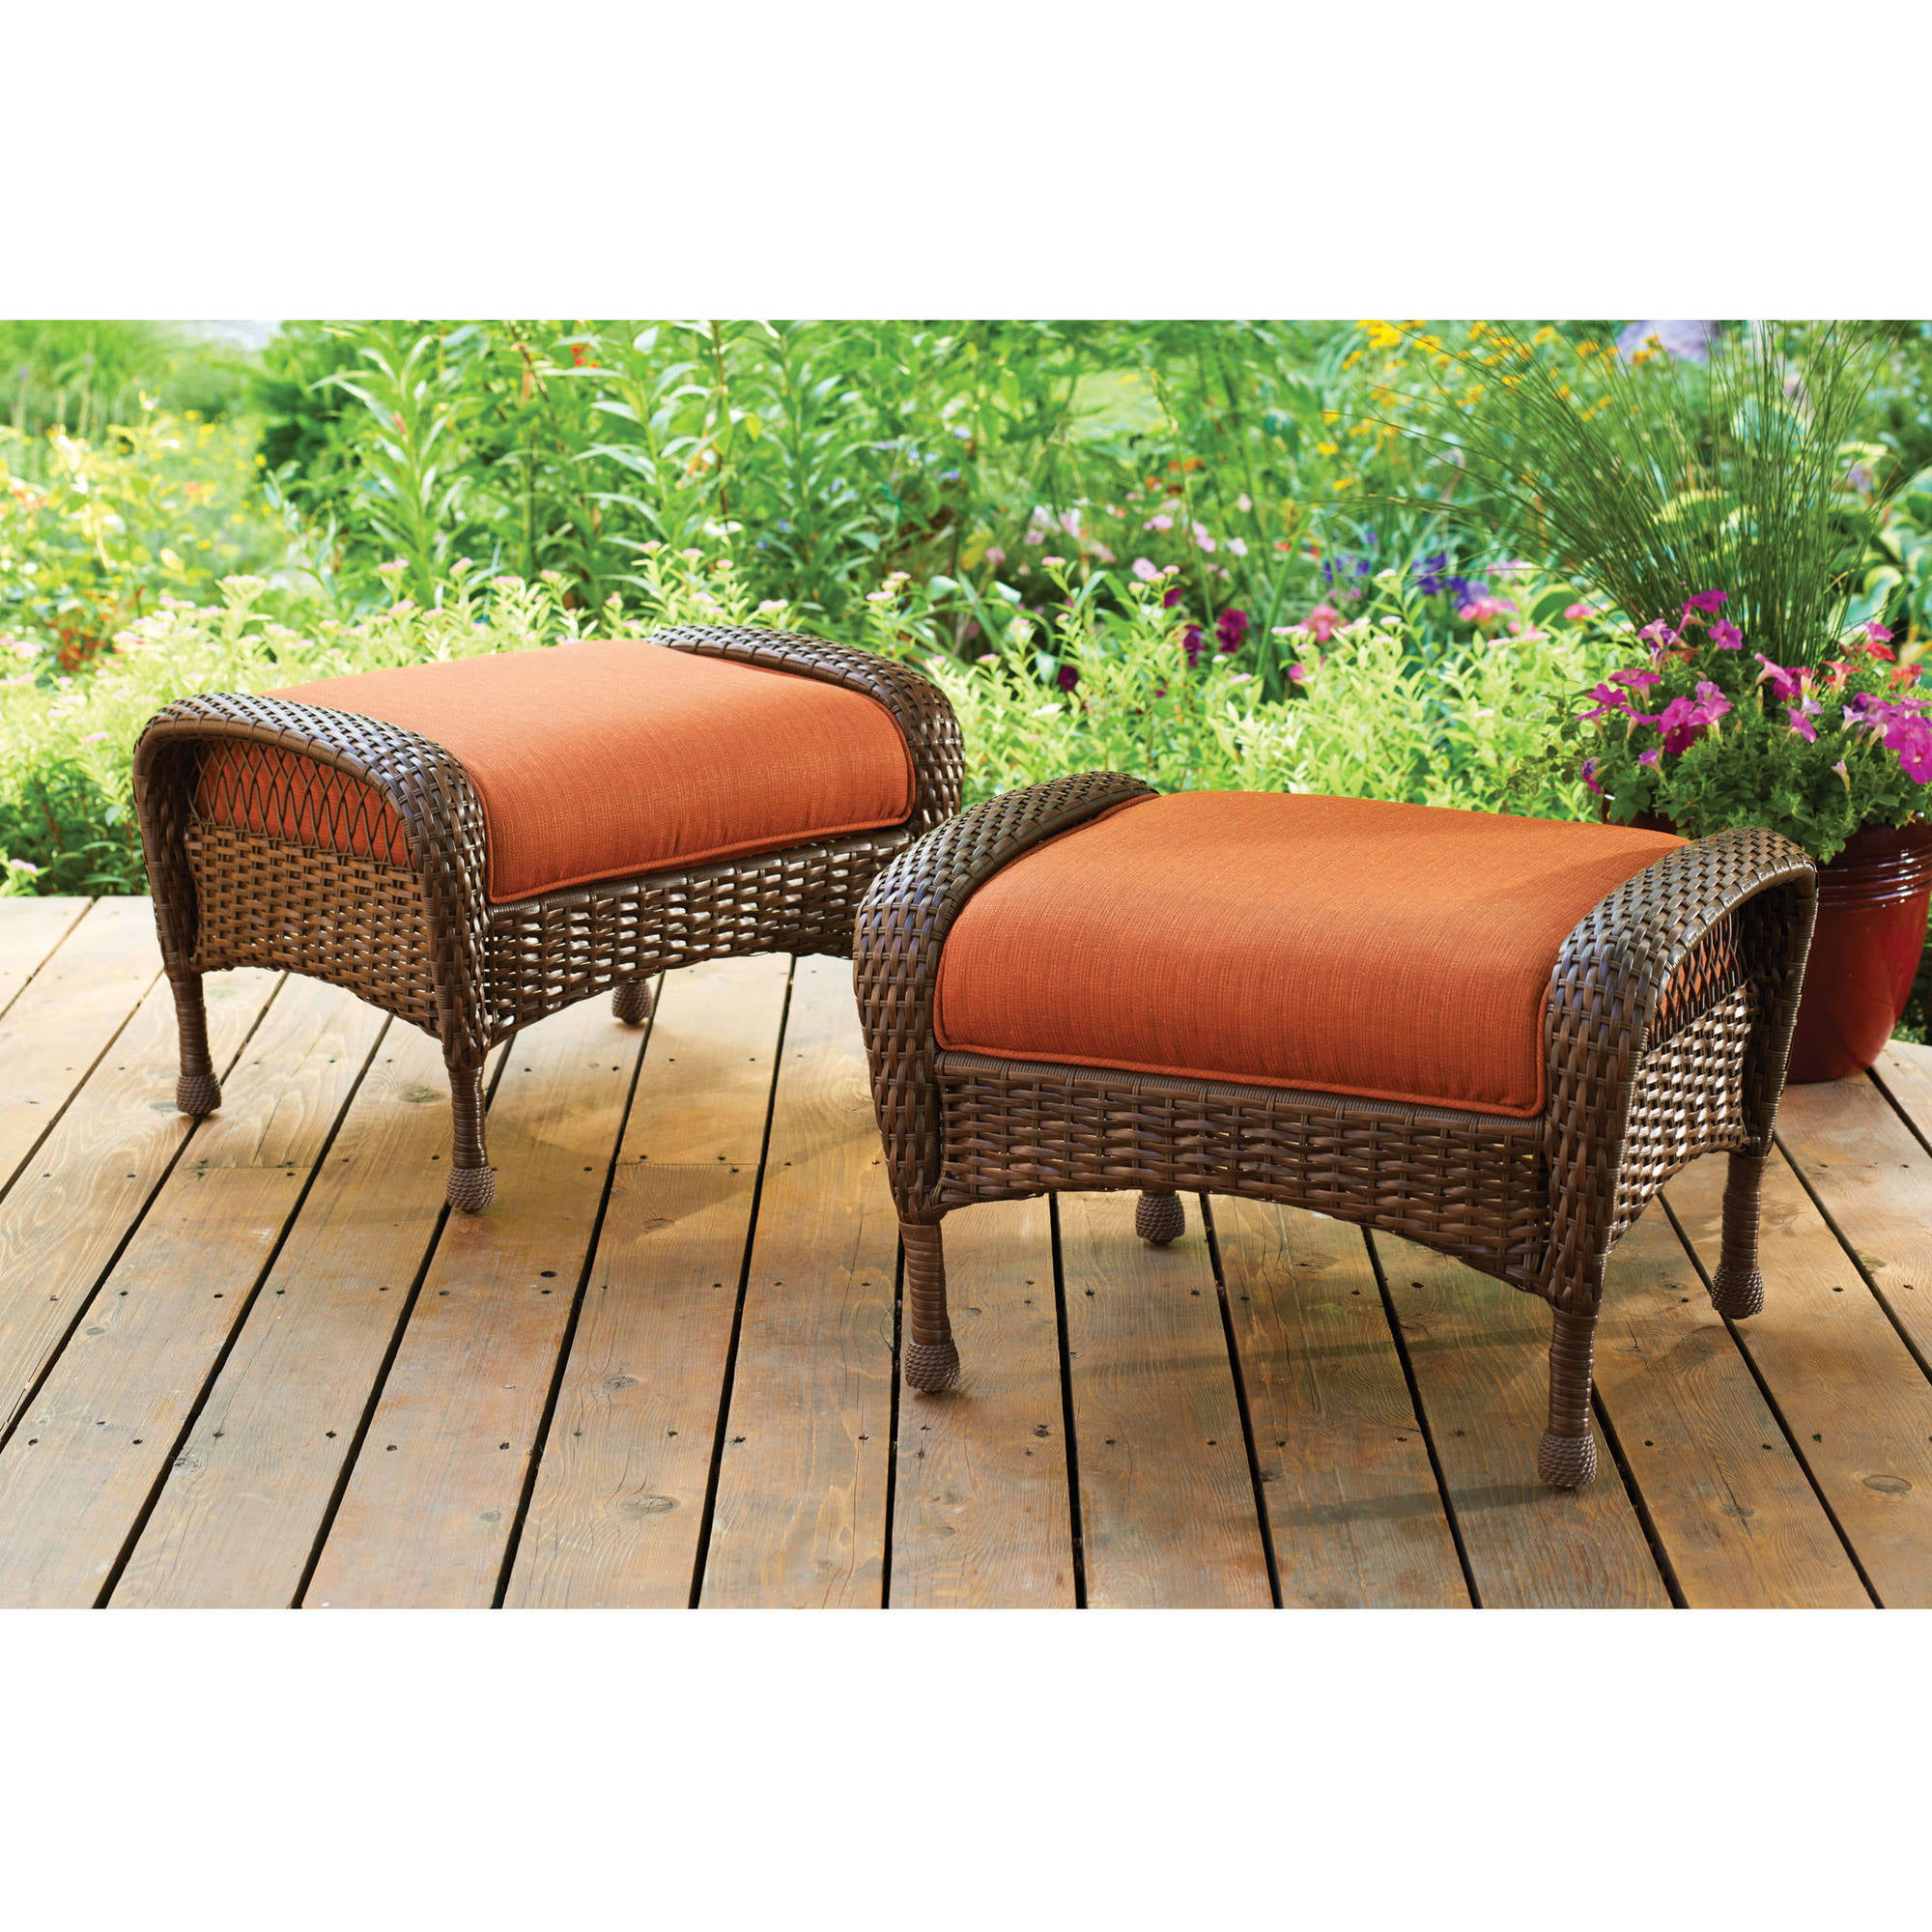 Garden Furniture Sets patio furniture - walmart